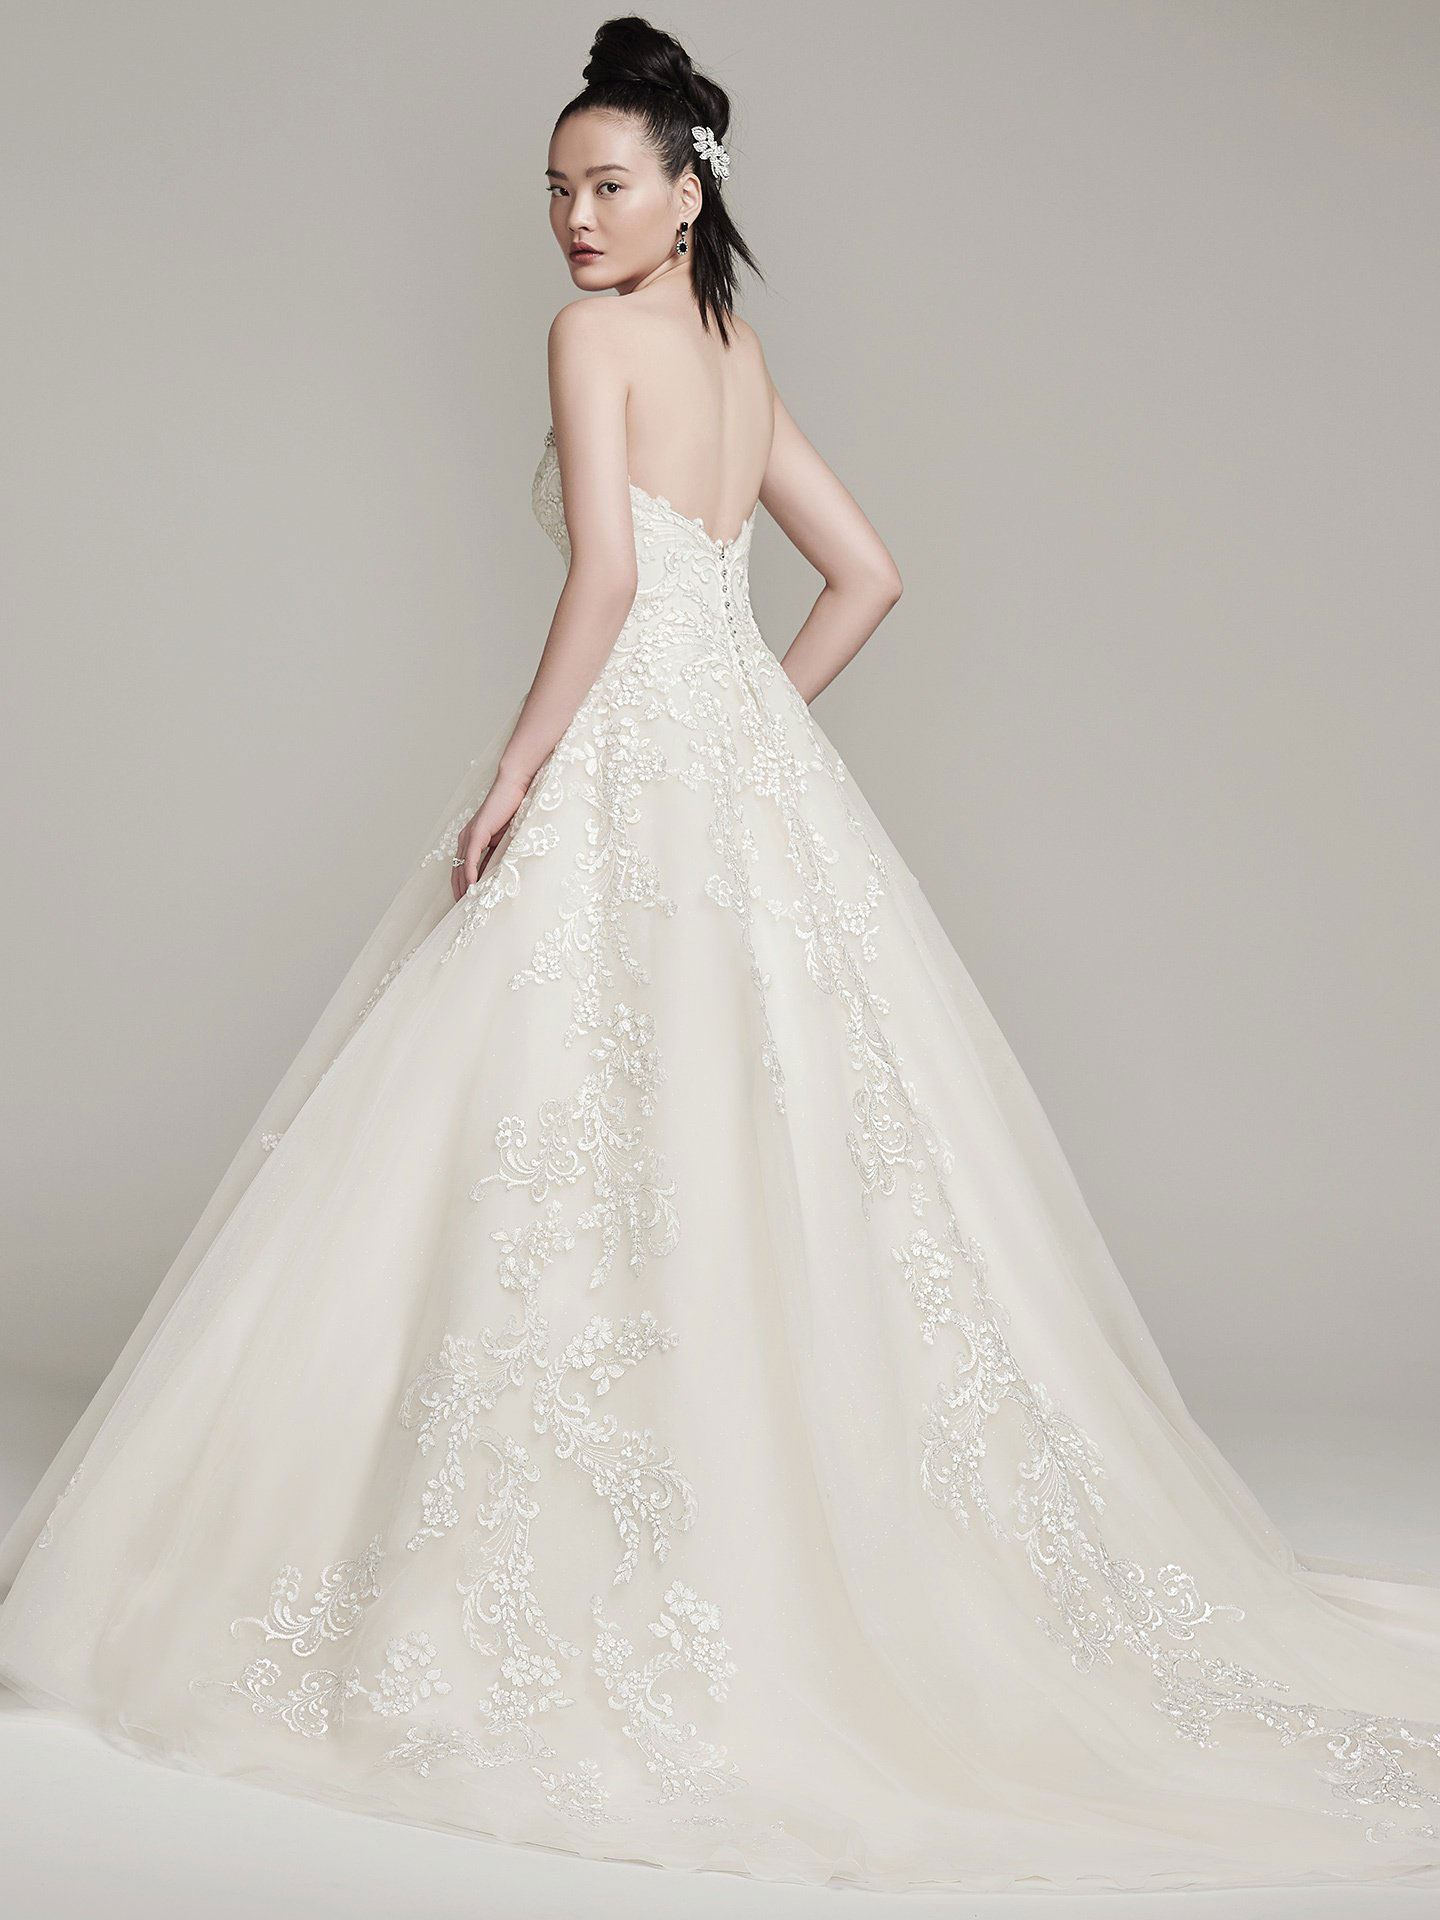 Sottero &#038; Midgley <br> Olga <br> Size 14 Was £1,580 Now £9000